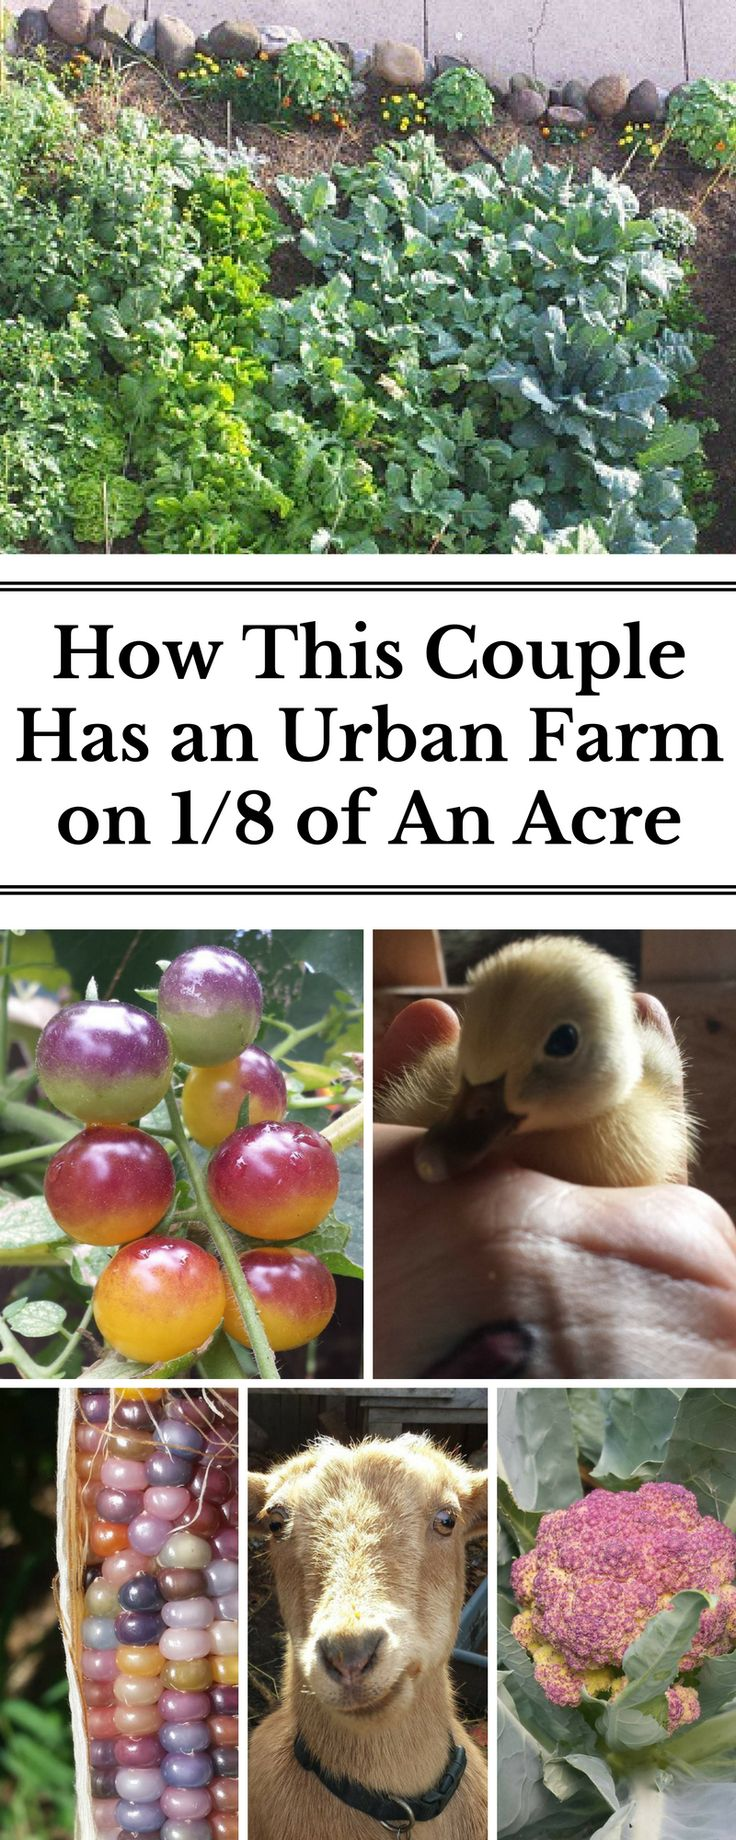 Best Farmer Me images on Pinterest Gardening Farms and